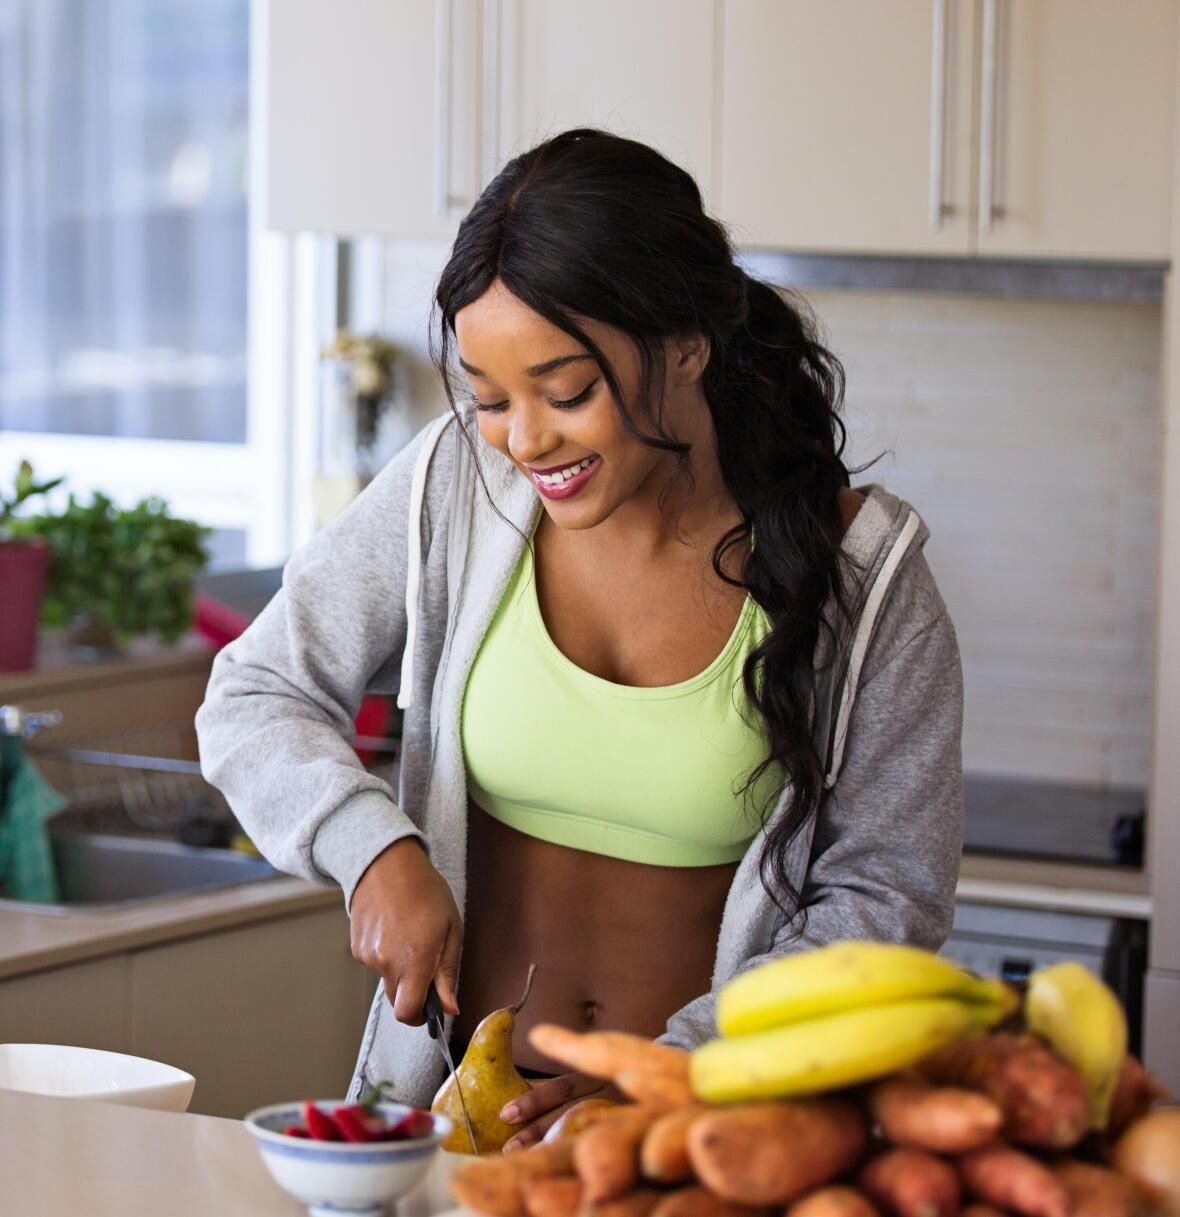 woman cutting fruits in the kitchen